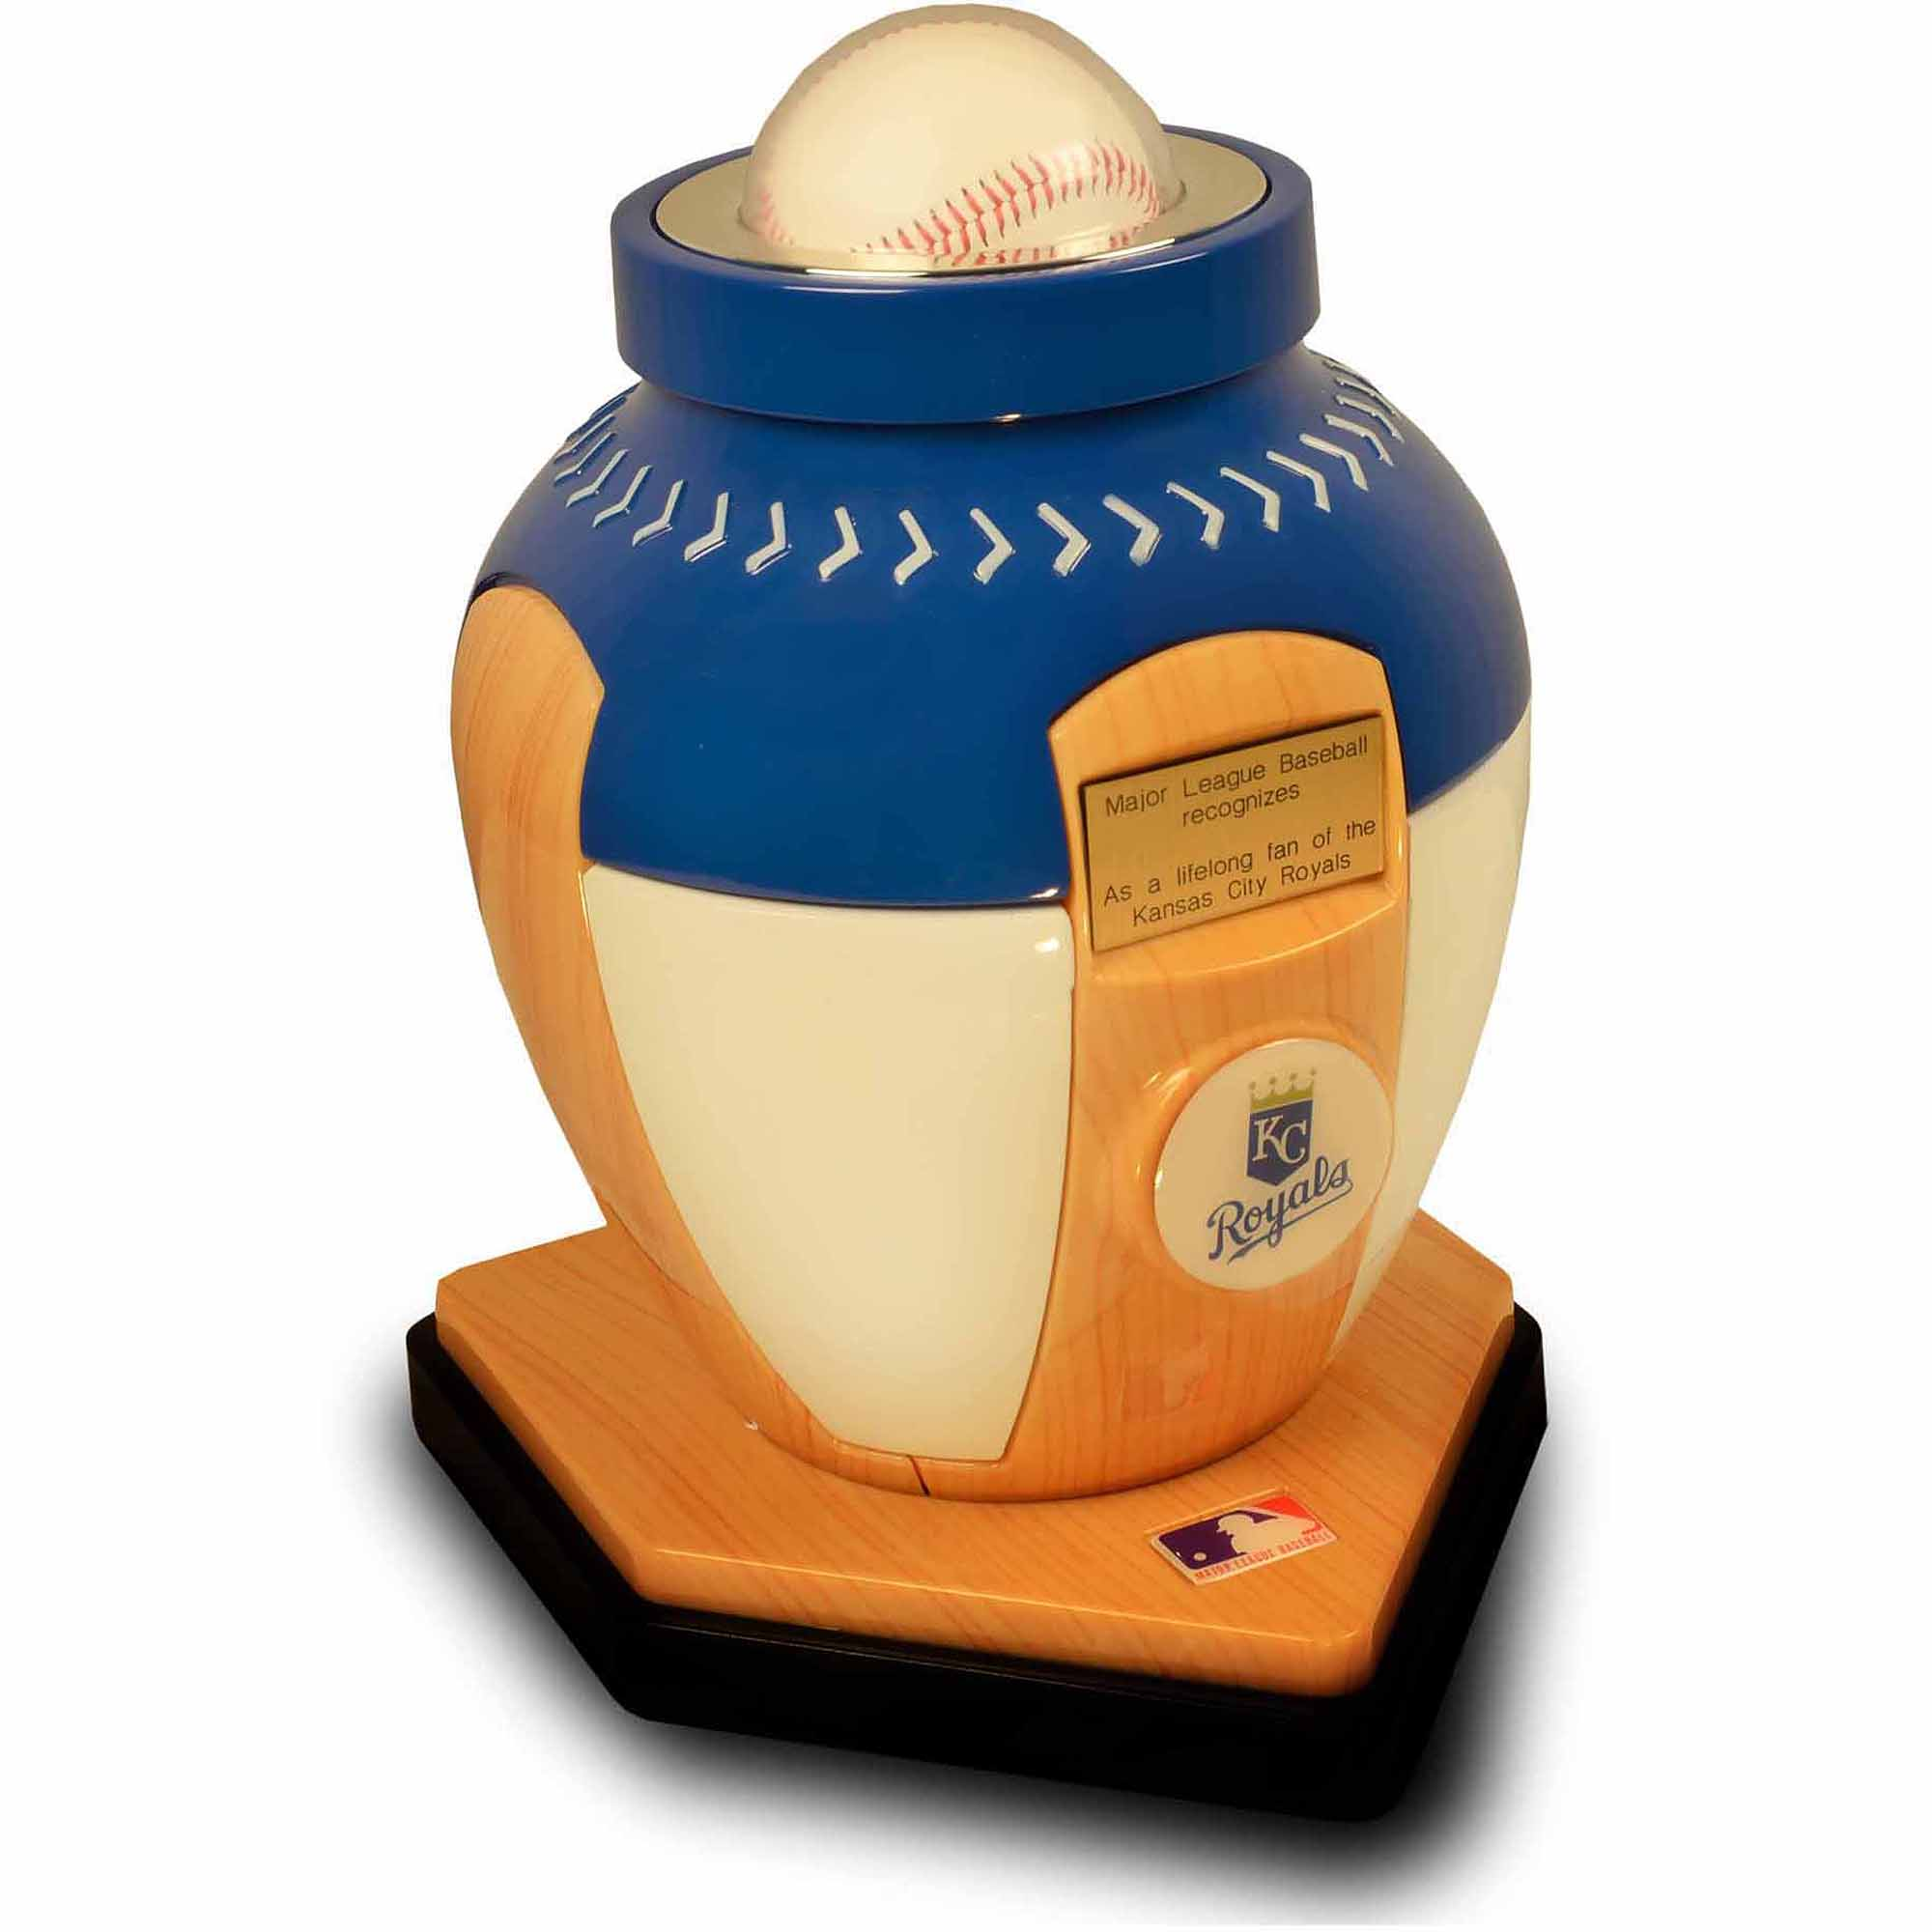 Official Major League Baseball Cremation Urn for Human Ashes - Kansas City Royals